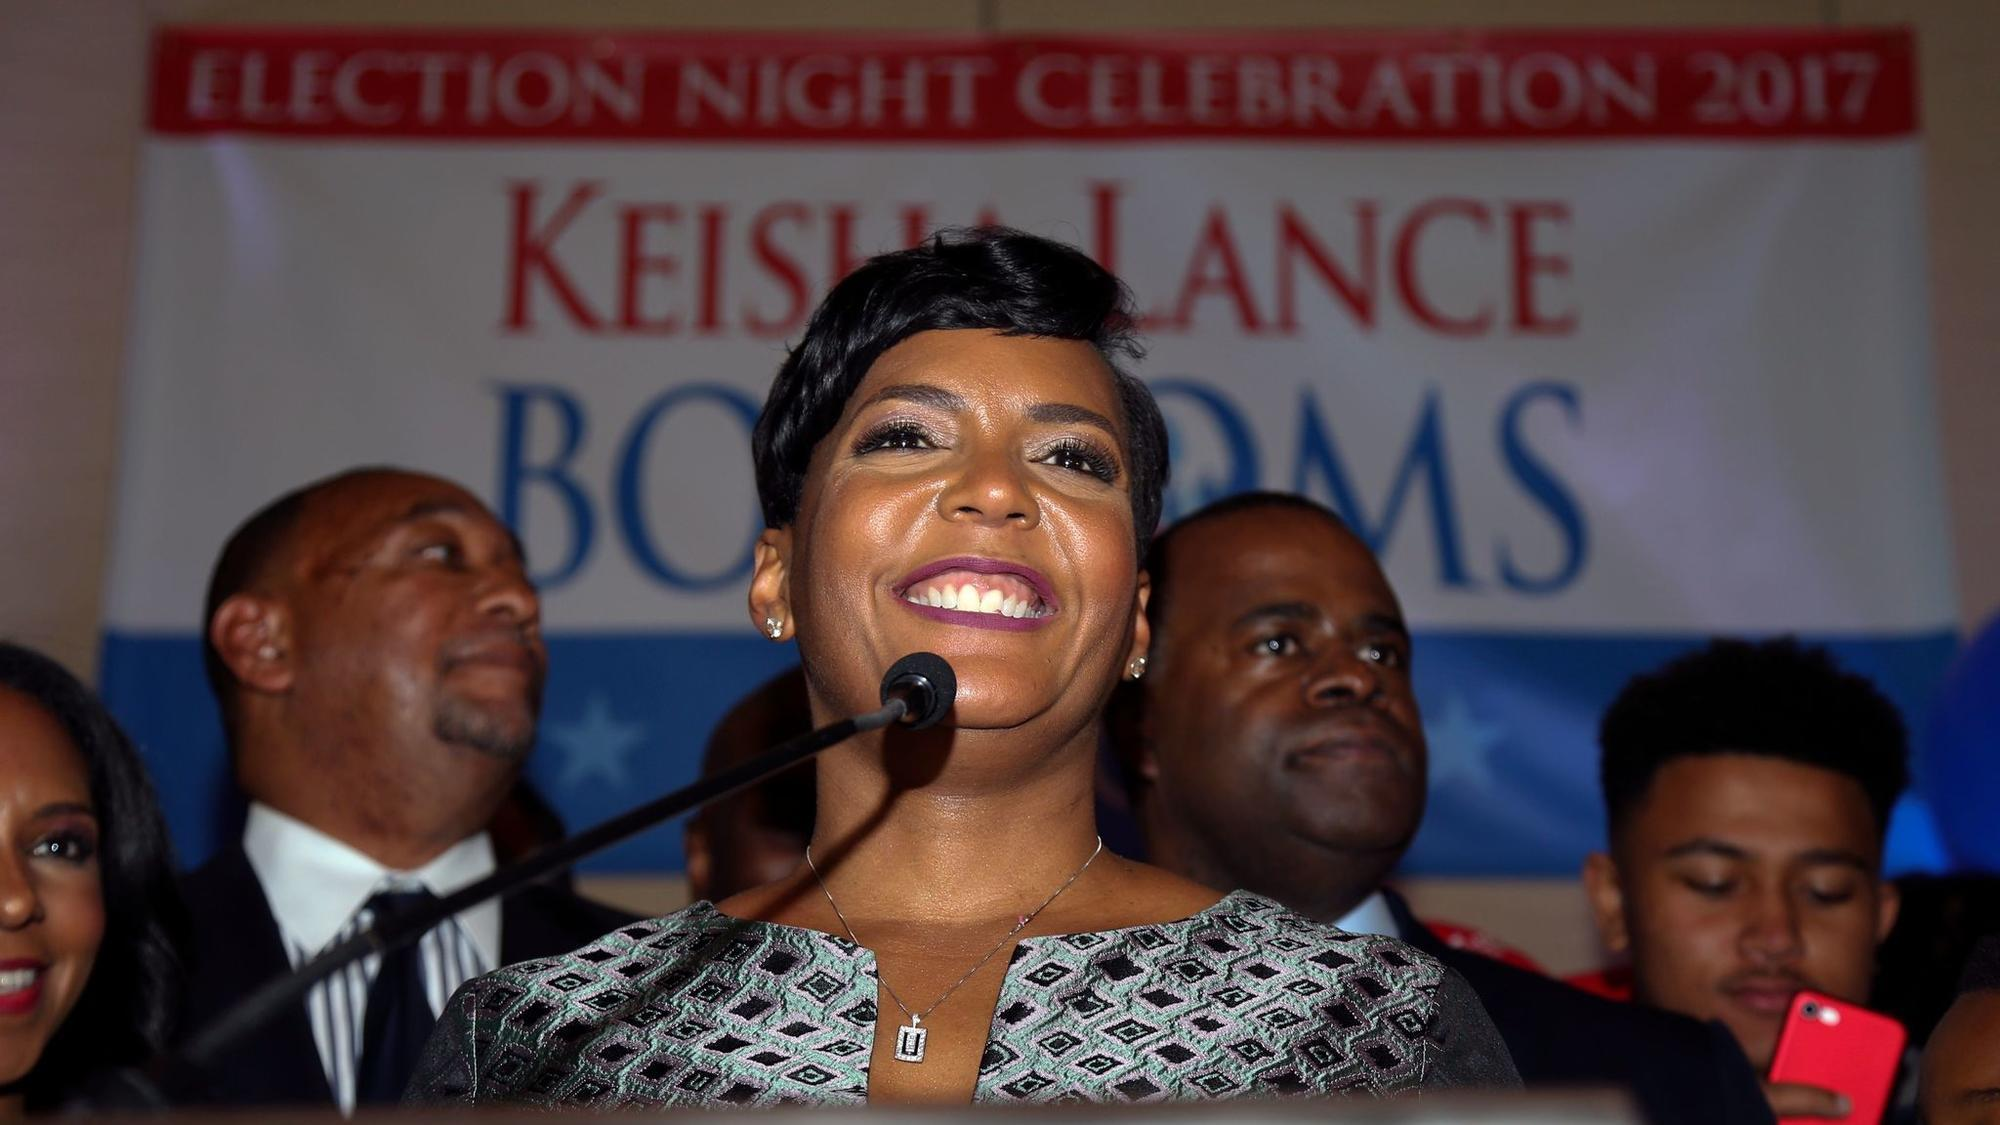 Atlanta mayoral candidate Keisha Lance Bottoms declares victory during an election night party. But with initial results showing a margin of just a few hundred votes, her rival asked for a recount. (John Bazemore / Associated Press)